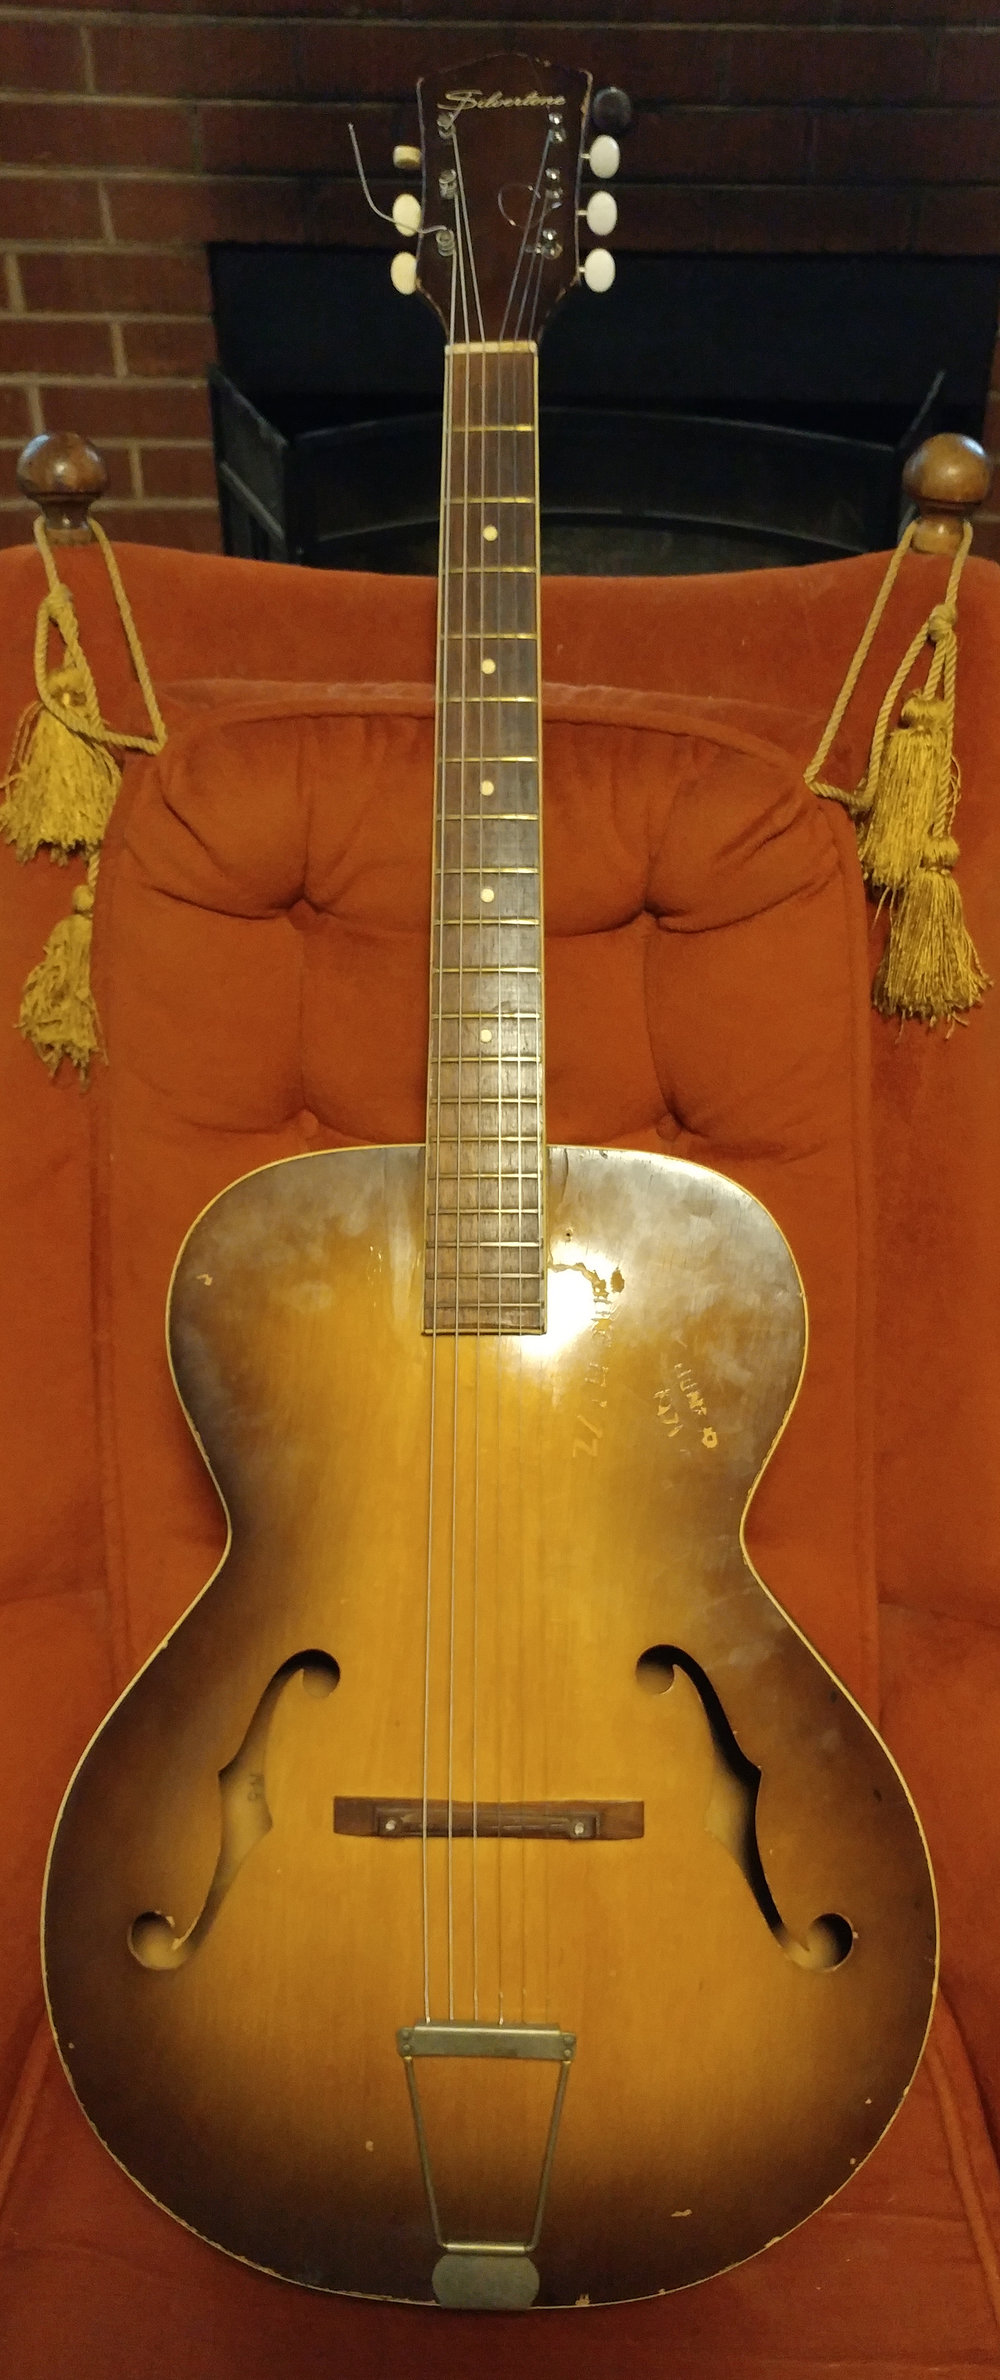 The Archtop